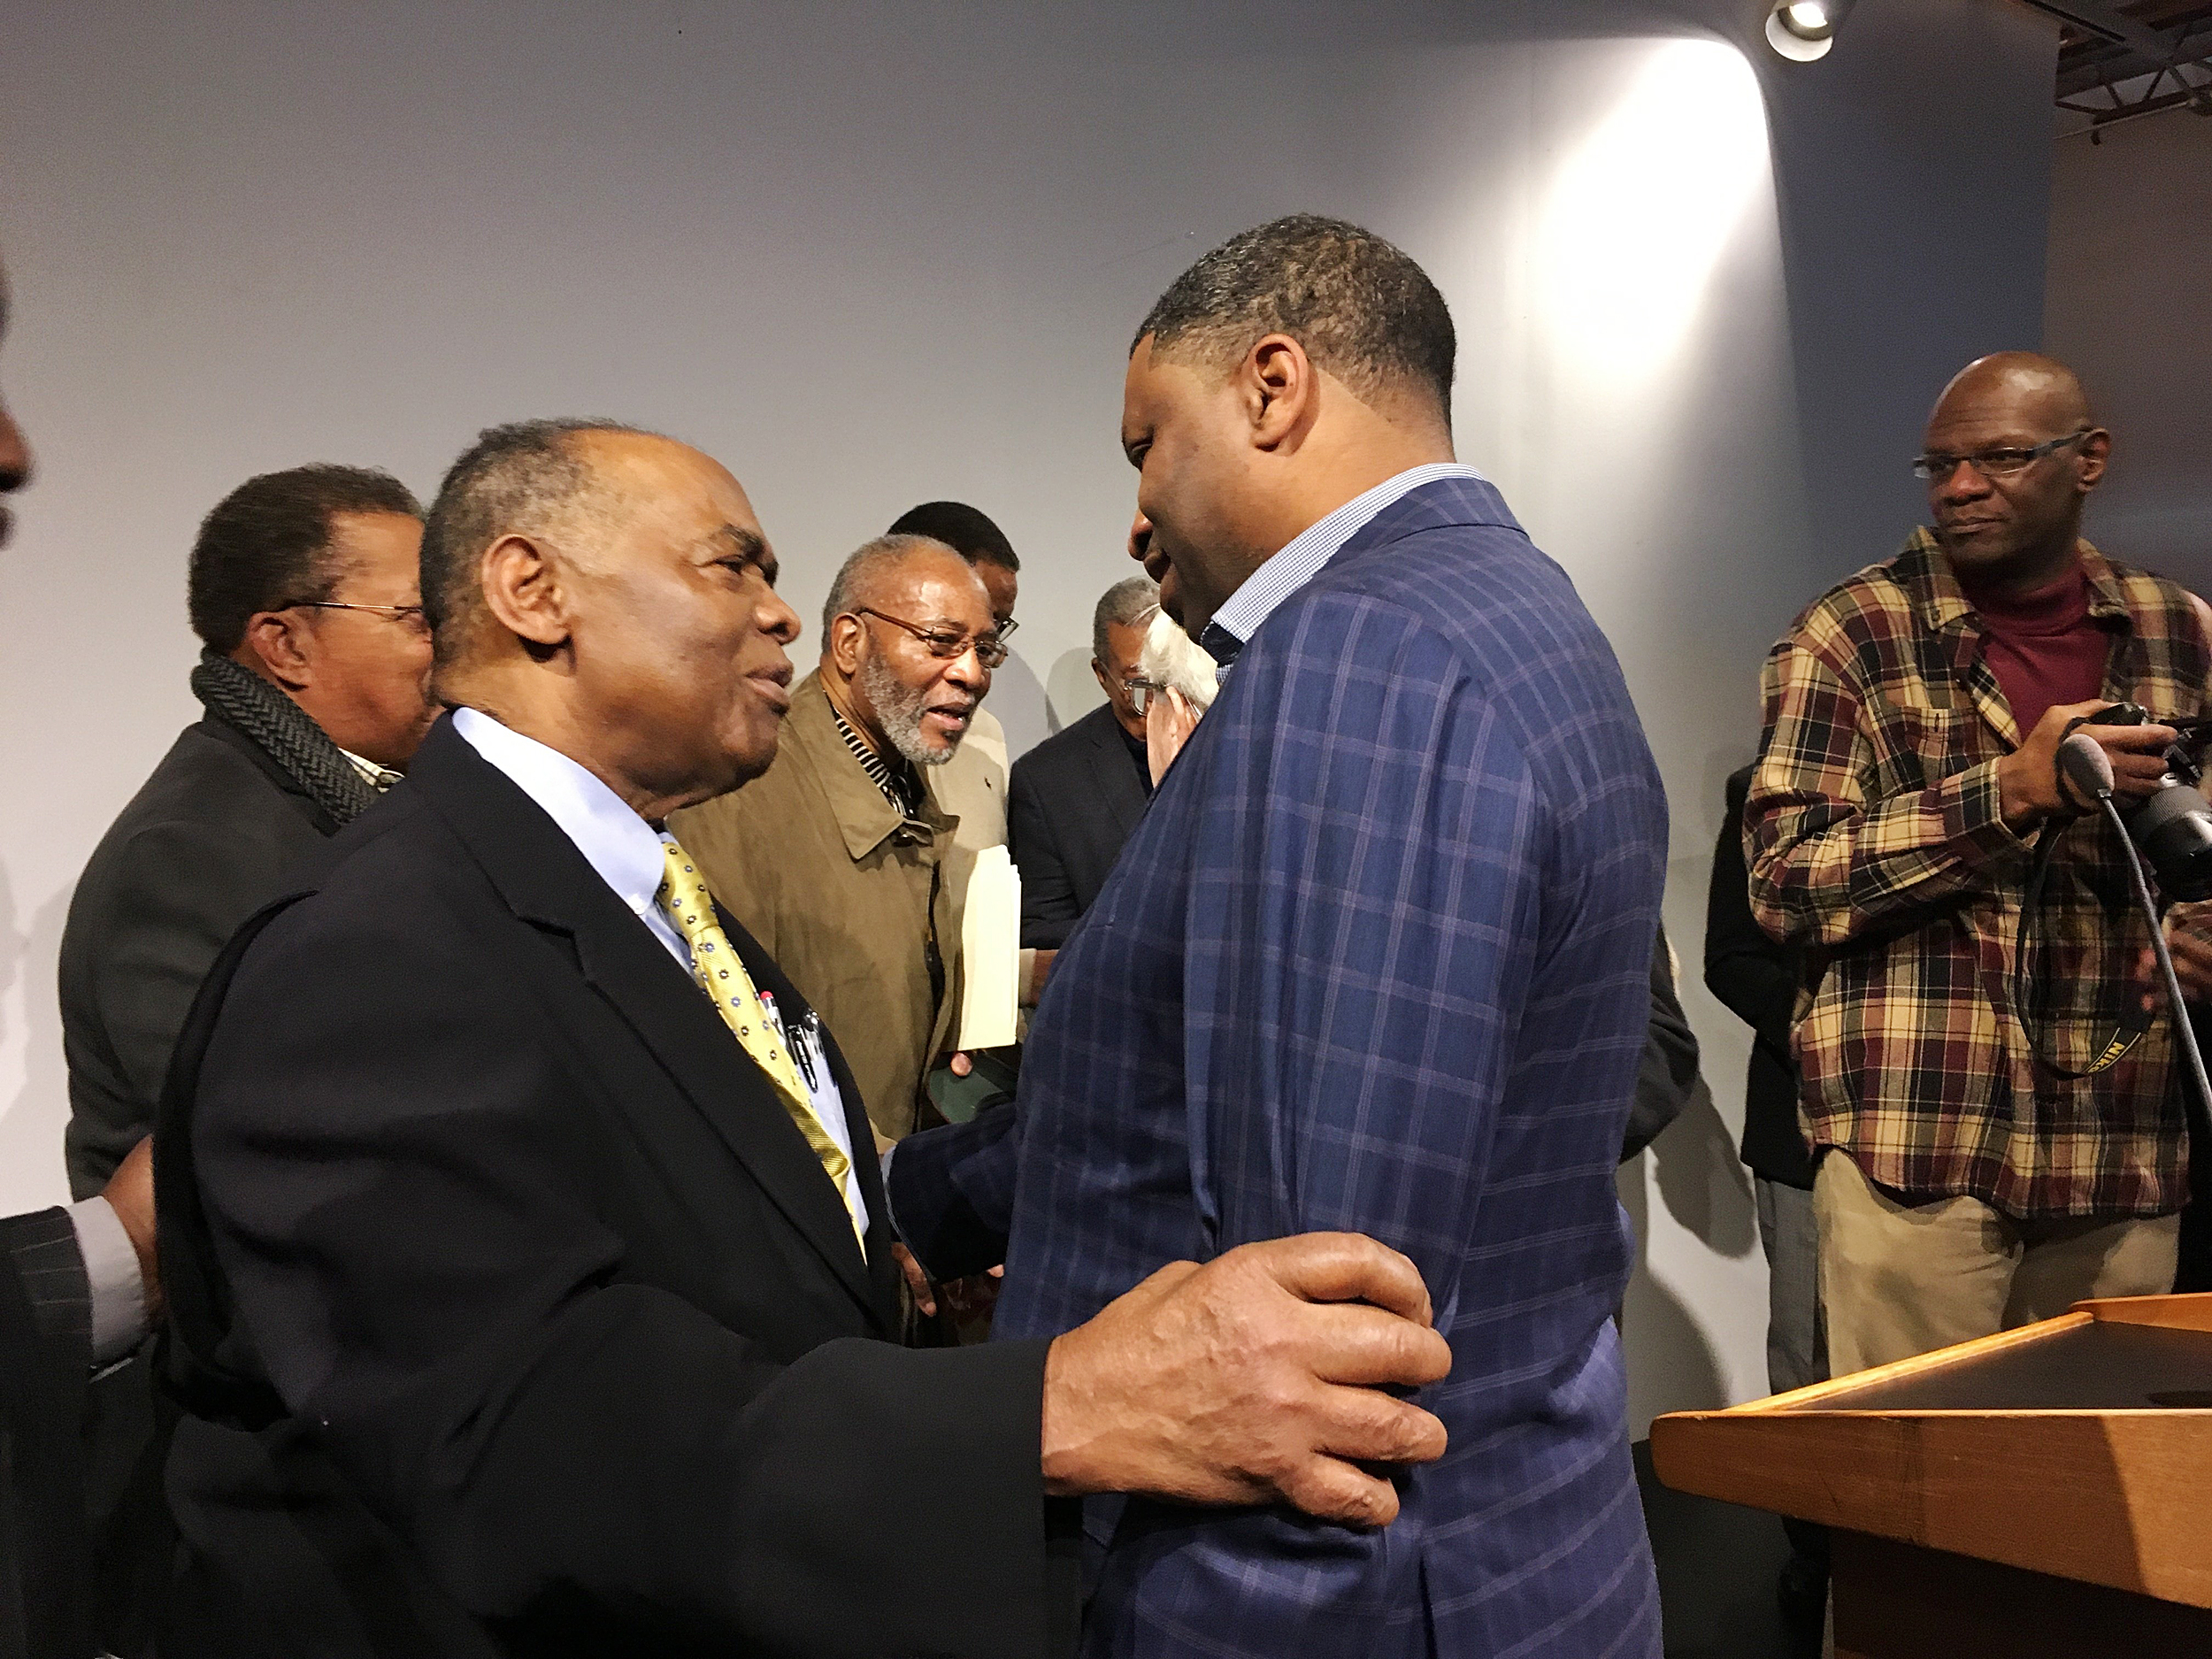 Image: NAACP President Derrick Johnson, right, speaks with Dr. Robert Smith, former president of the Medical Committee for Human Rights